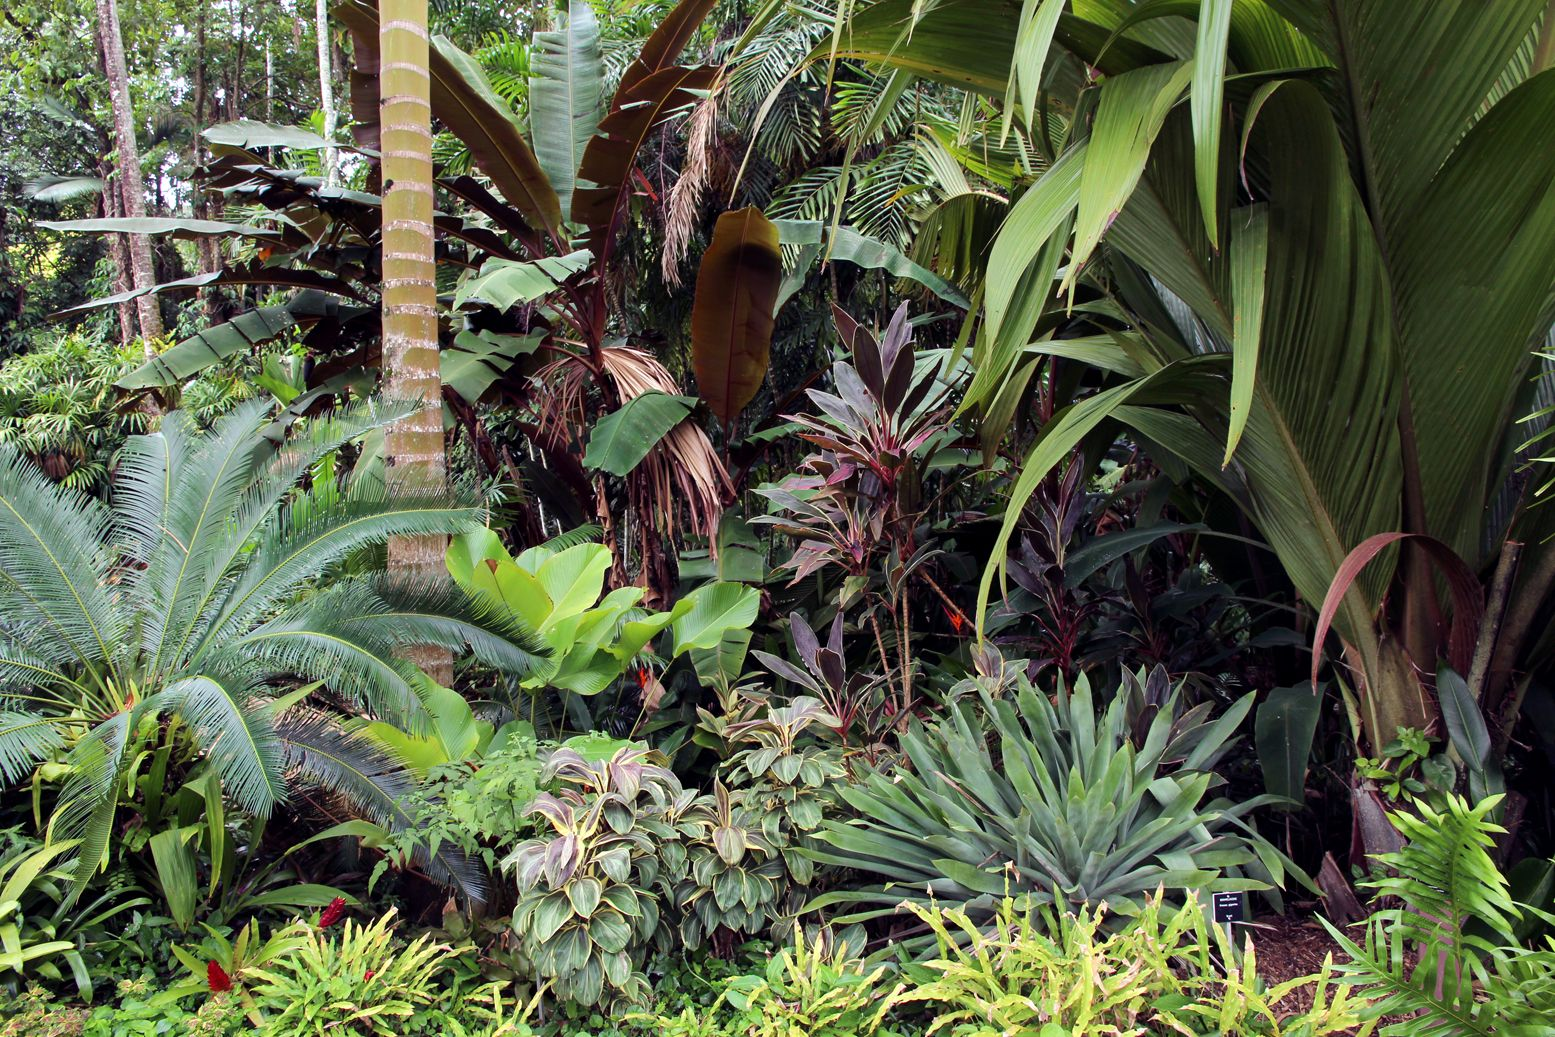 Cycad Heliconia indica Calathea Cordyline Miss Andrea and